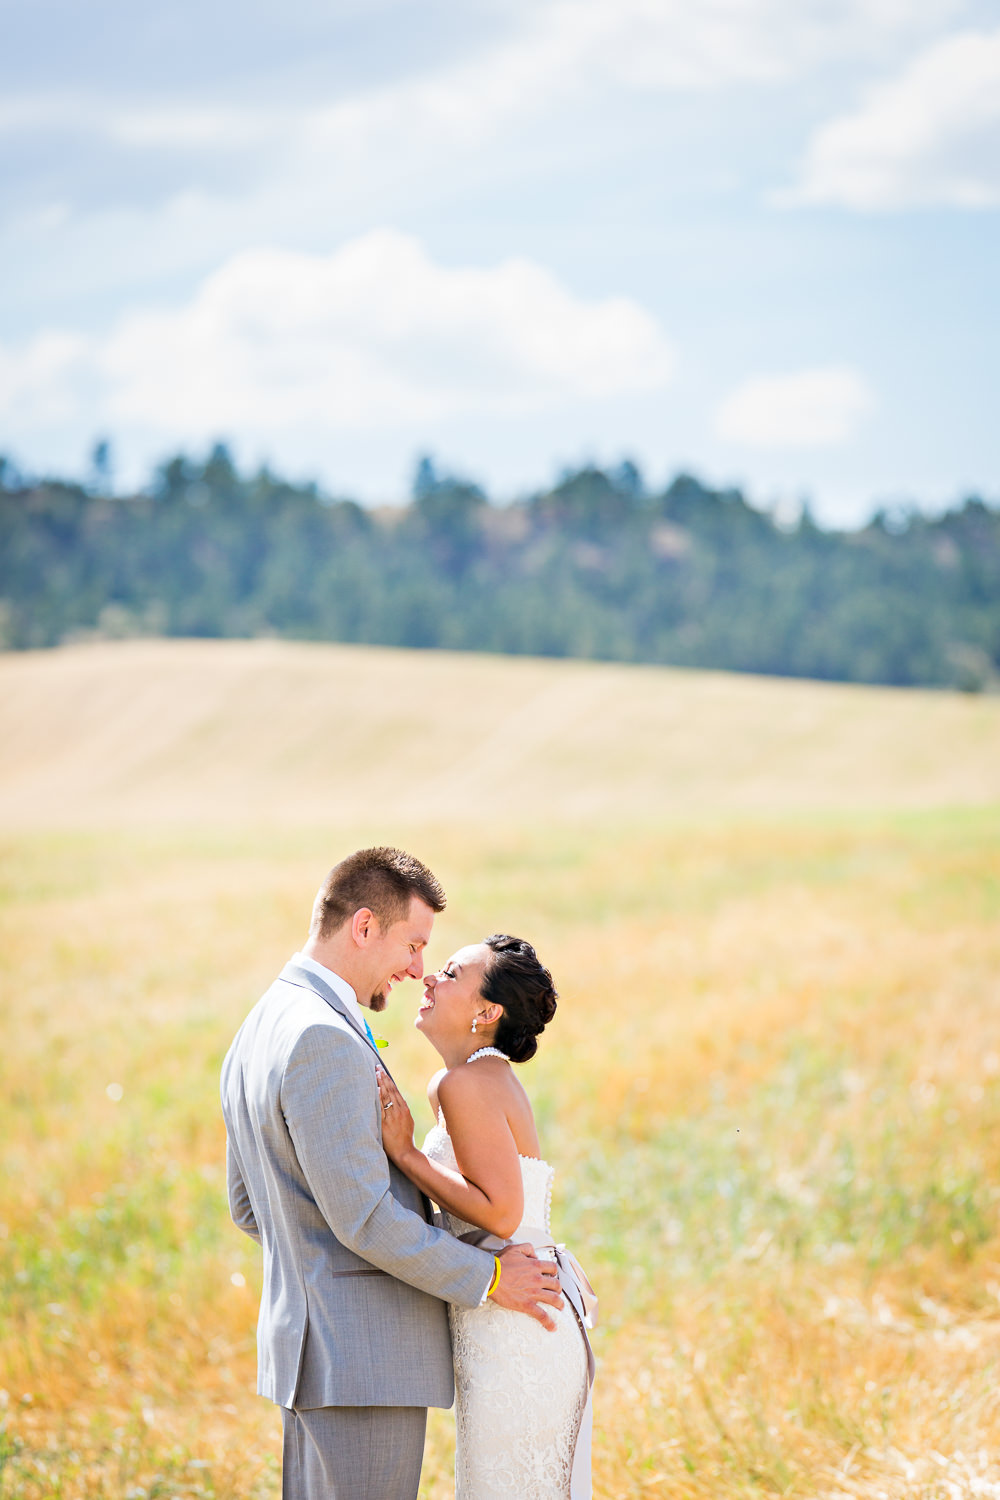 billings-montana-chanceys-wedding-first-look-bride-groom-hug.jpg